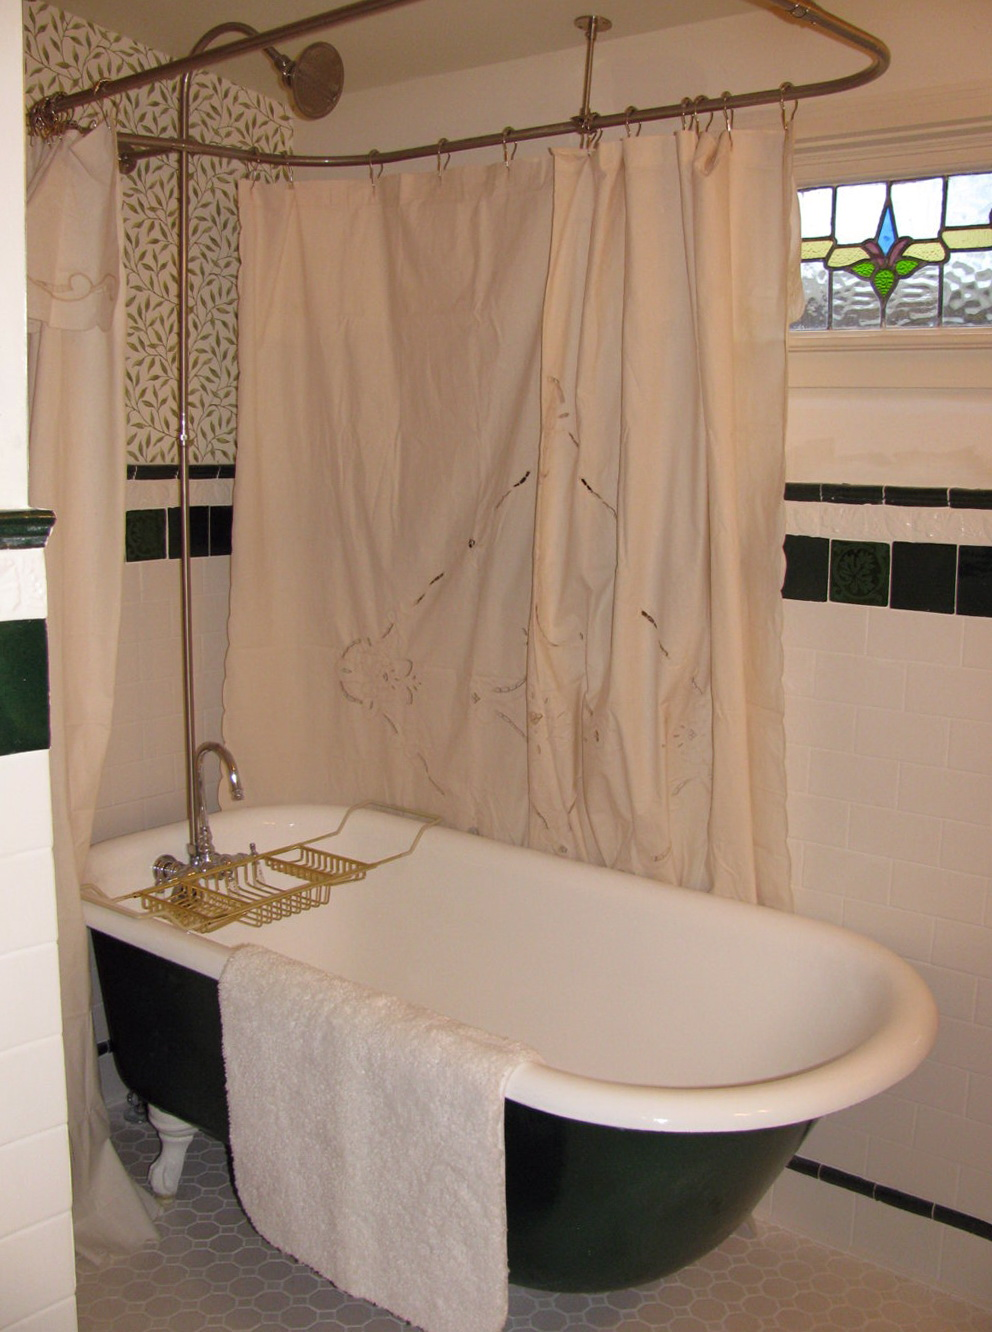 Charming Shower Curtain Size For Clawfoot Tub Images - Best Image ...